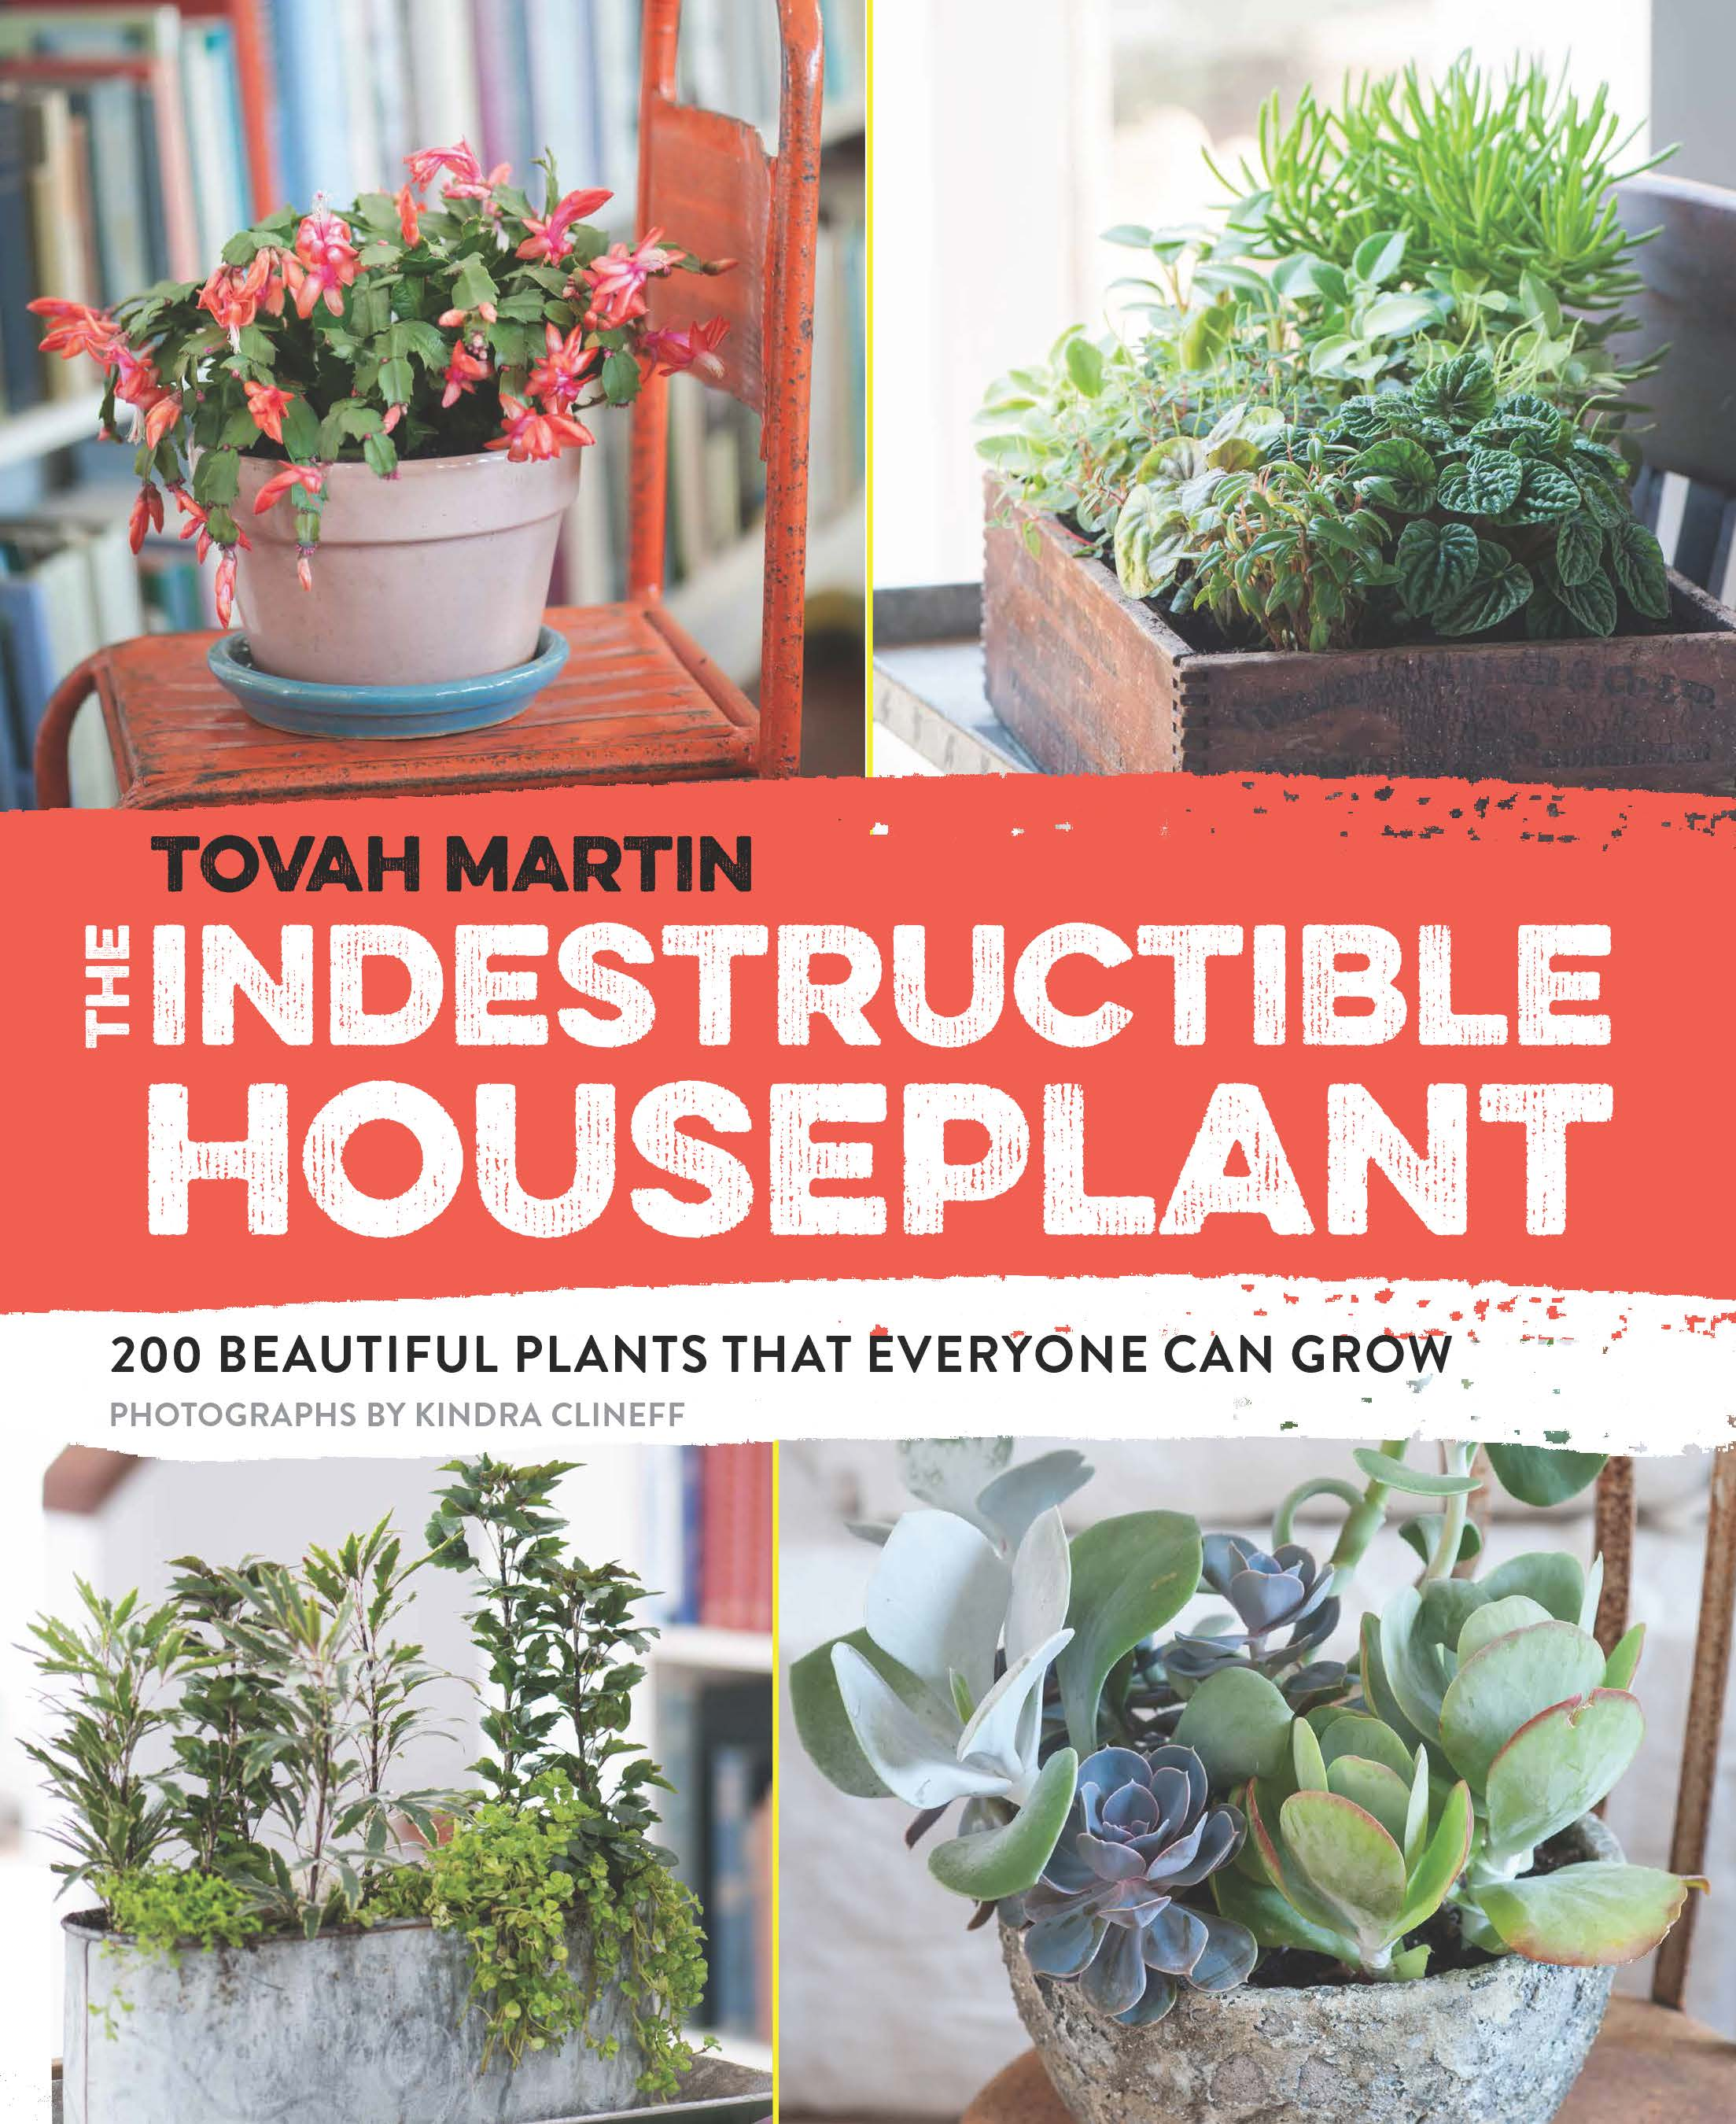 Martin_The Indestructible Houseplant_v1_07302014